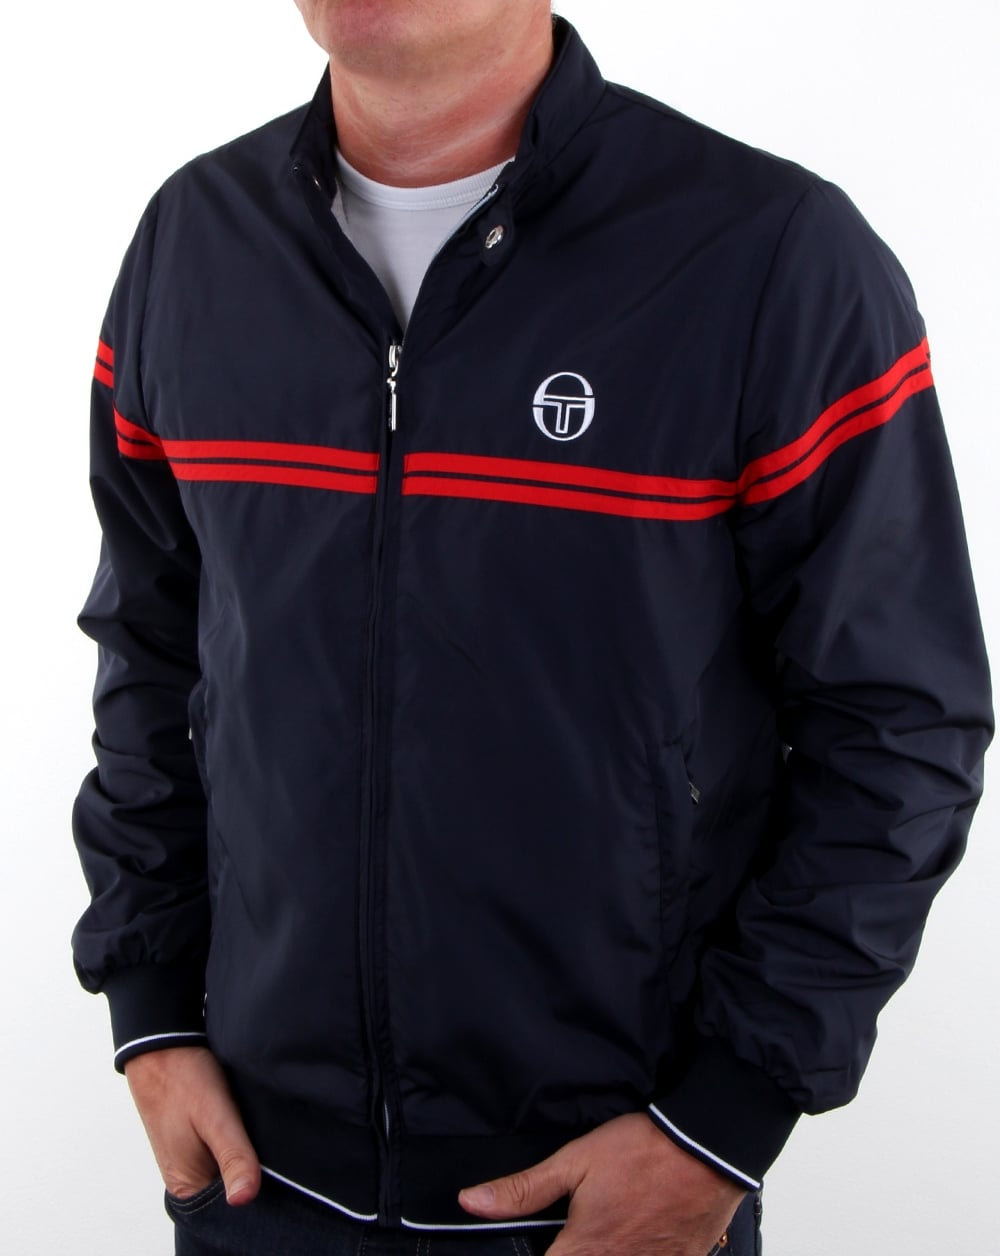 sergio tacchini supermac track top navy red men 39 s top. Black Bedroom Furniture Sets. Home Design Ideas